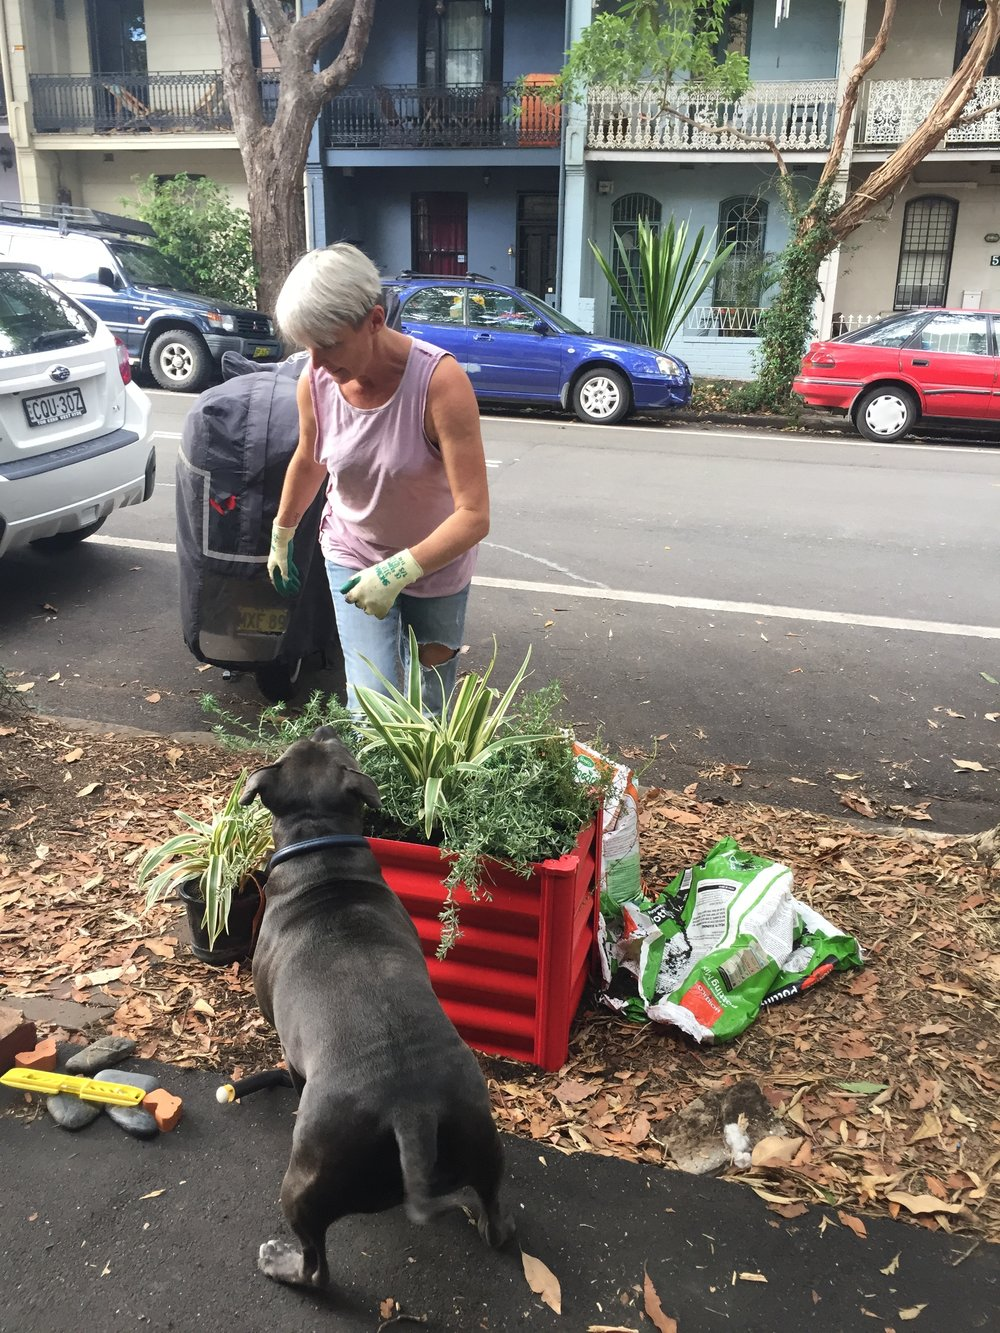 • A Chippendale road garden under construction with a mix of compost and imported soil